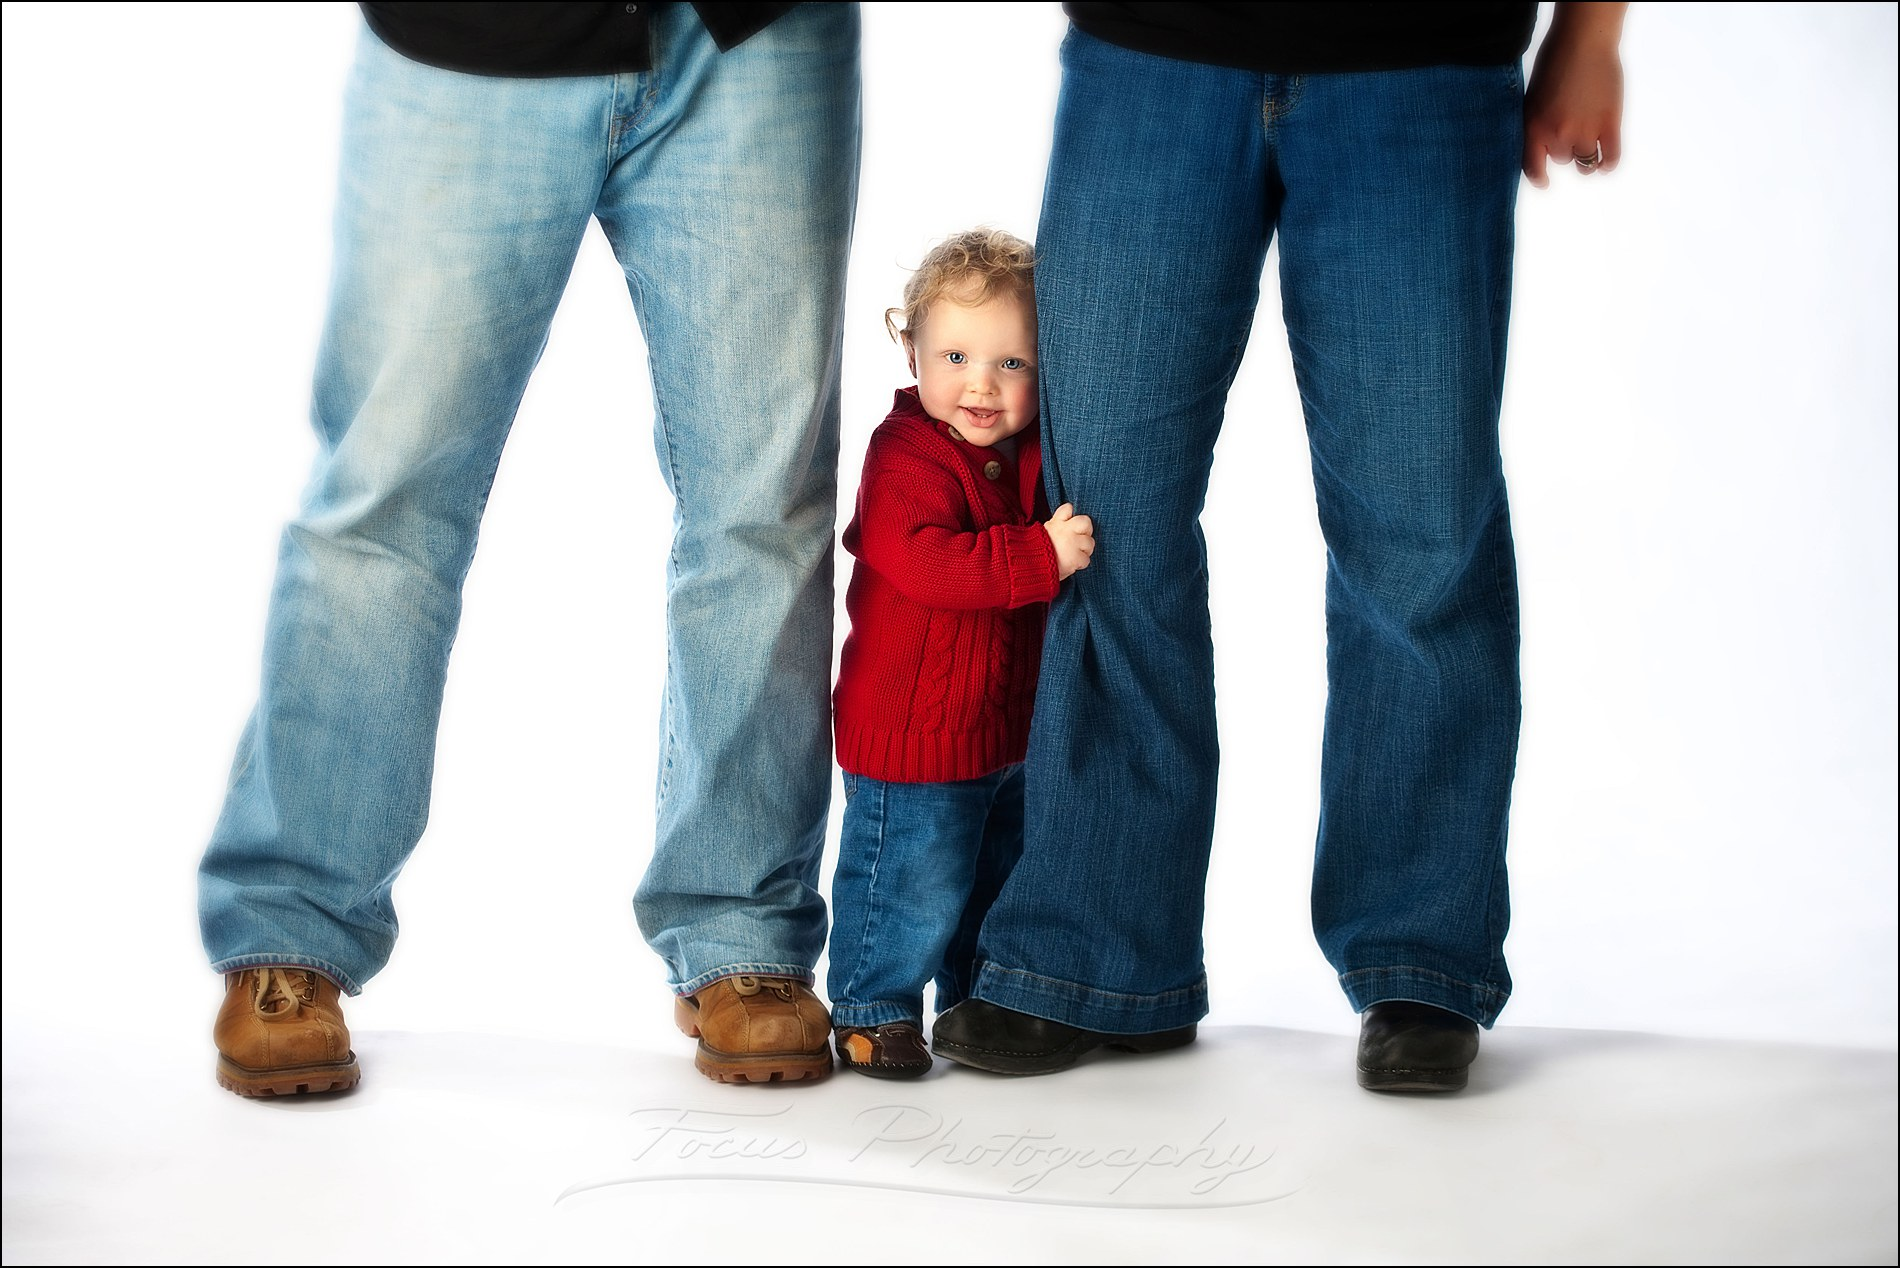 baby stands up supported by parents' legs in family picture